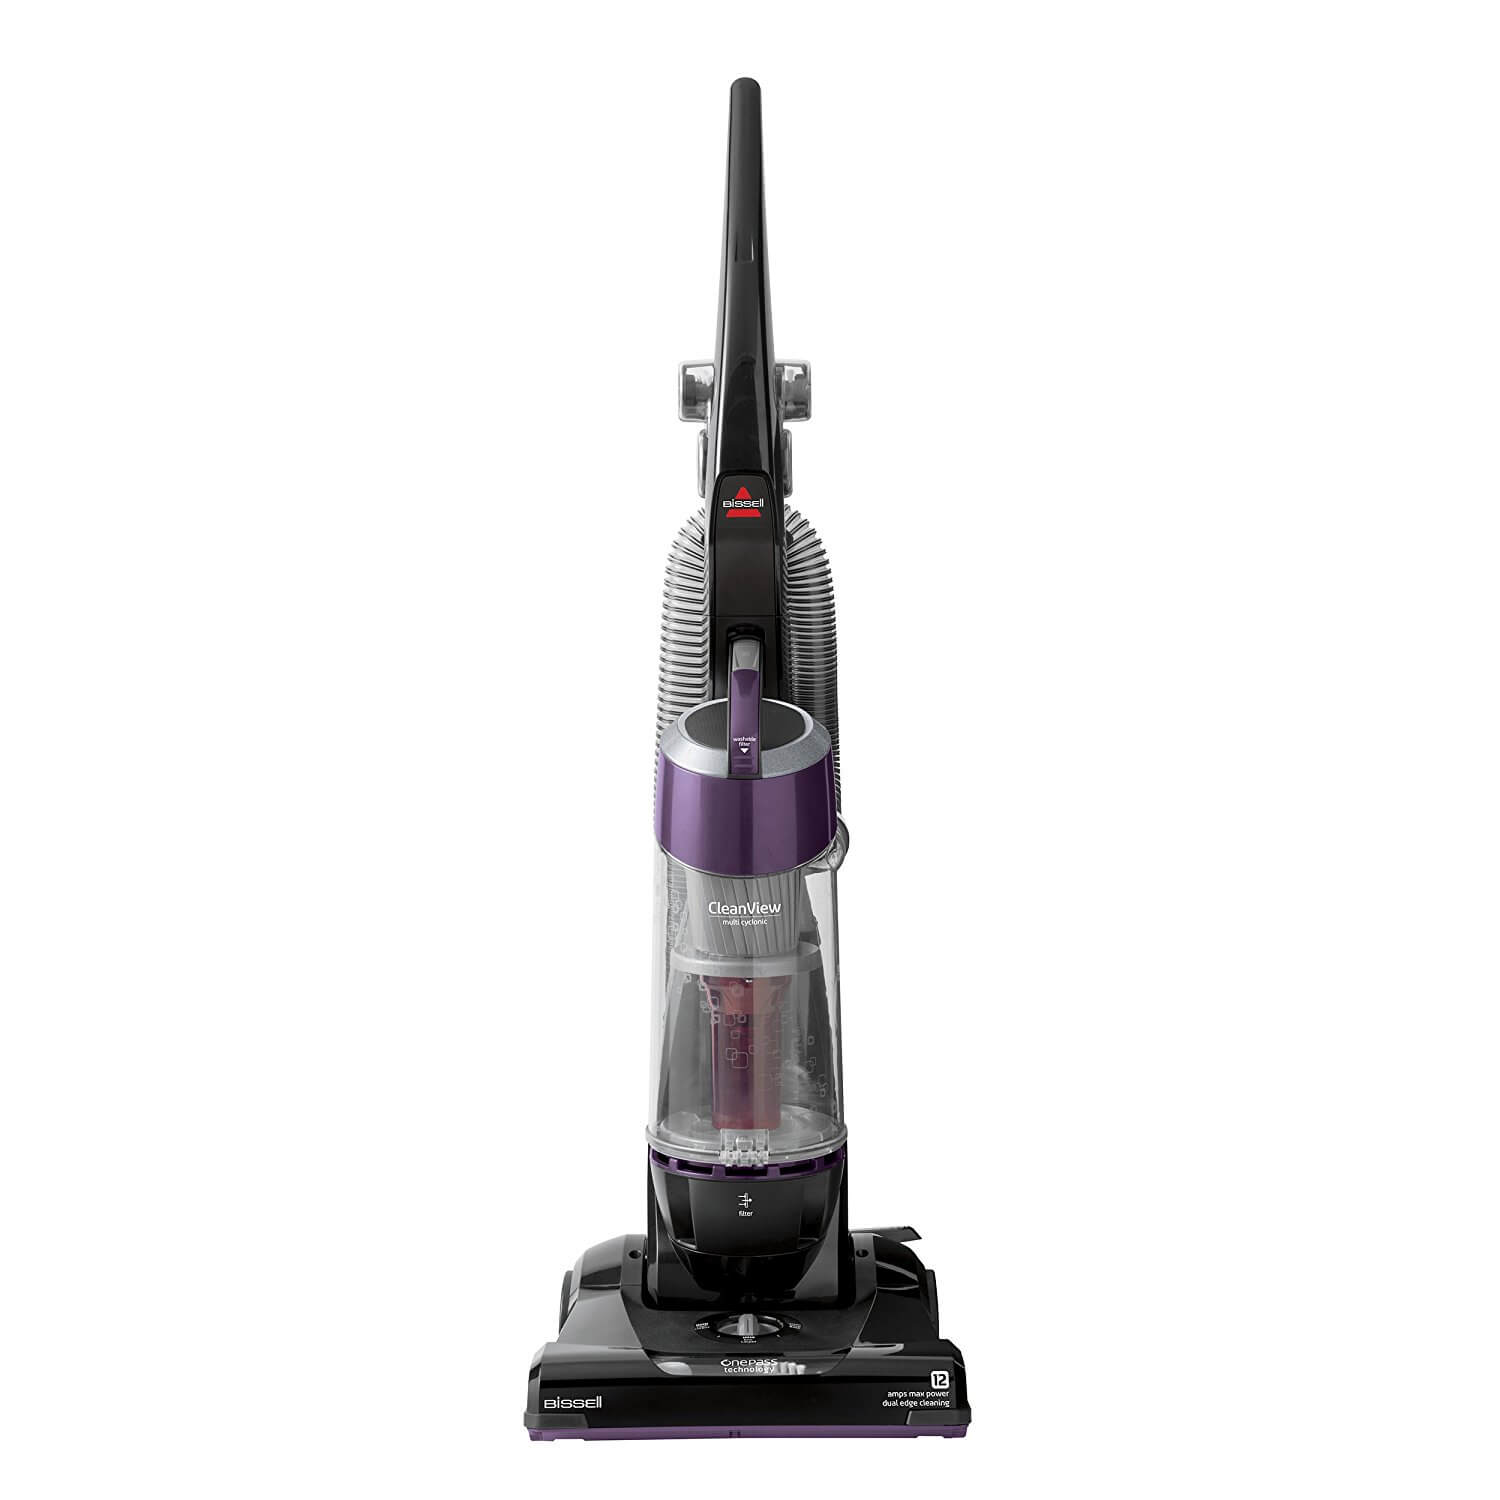 Best Vacuum Under 200 In April 2019 Bestvacuum Reviews